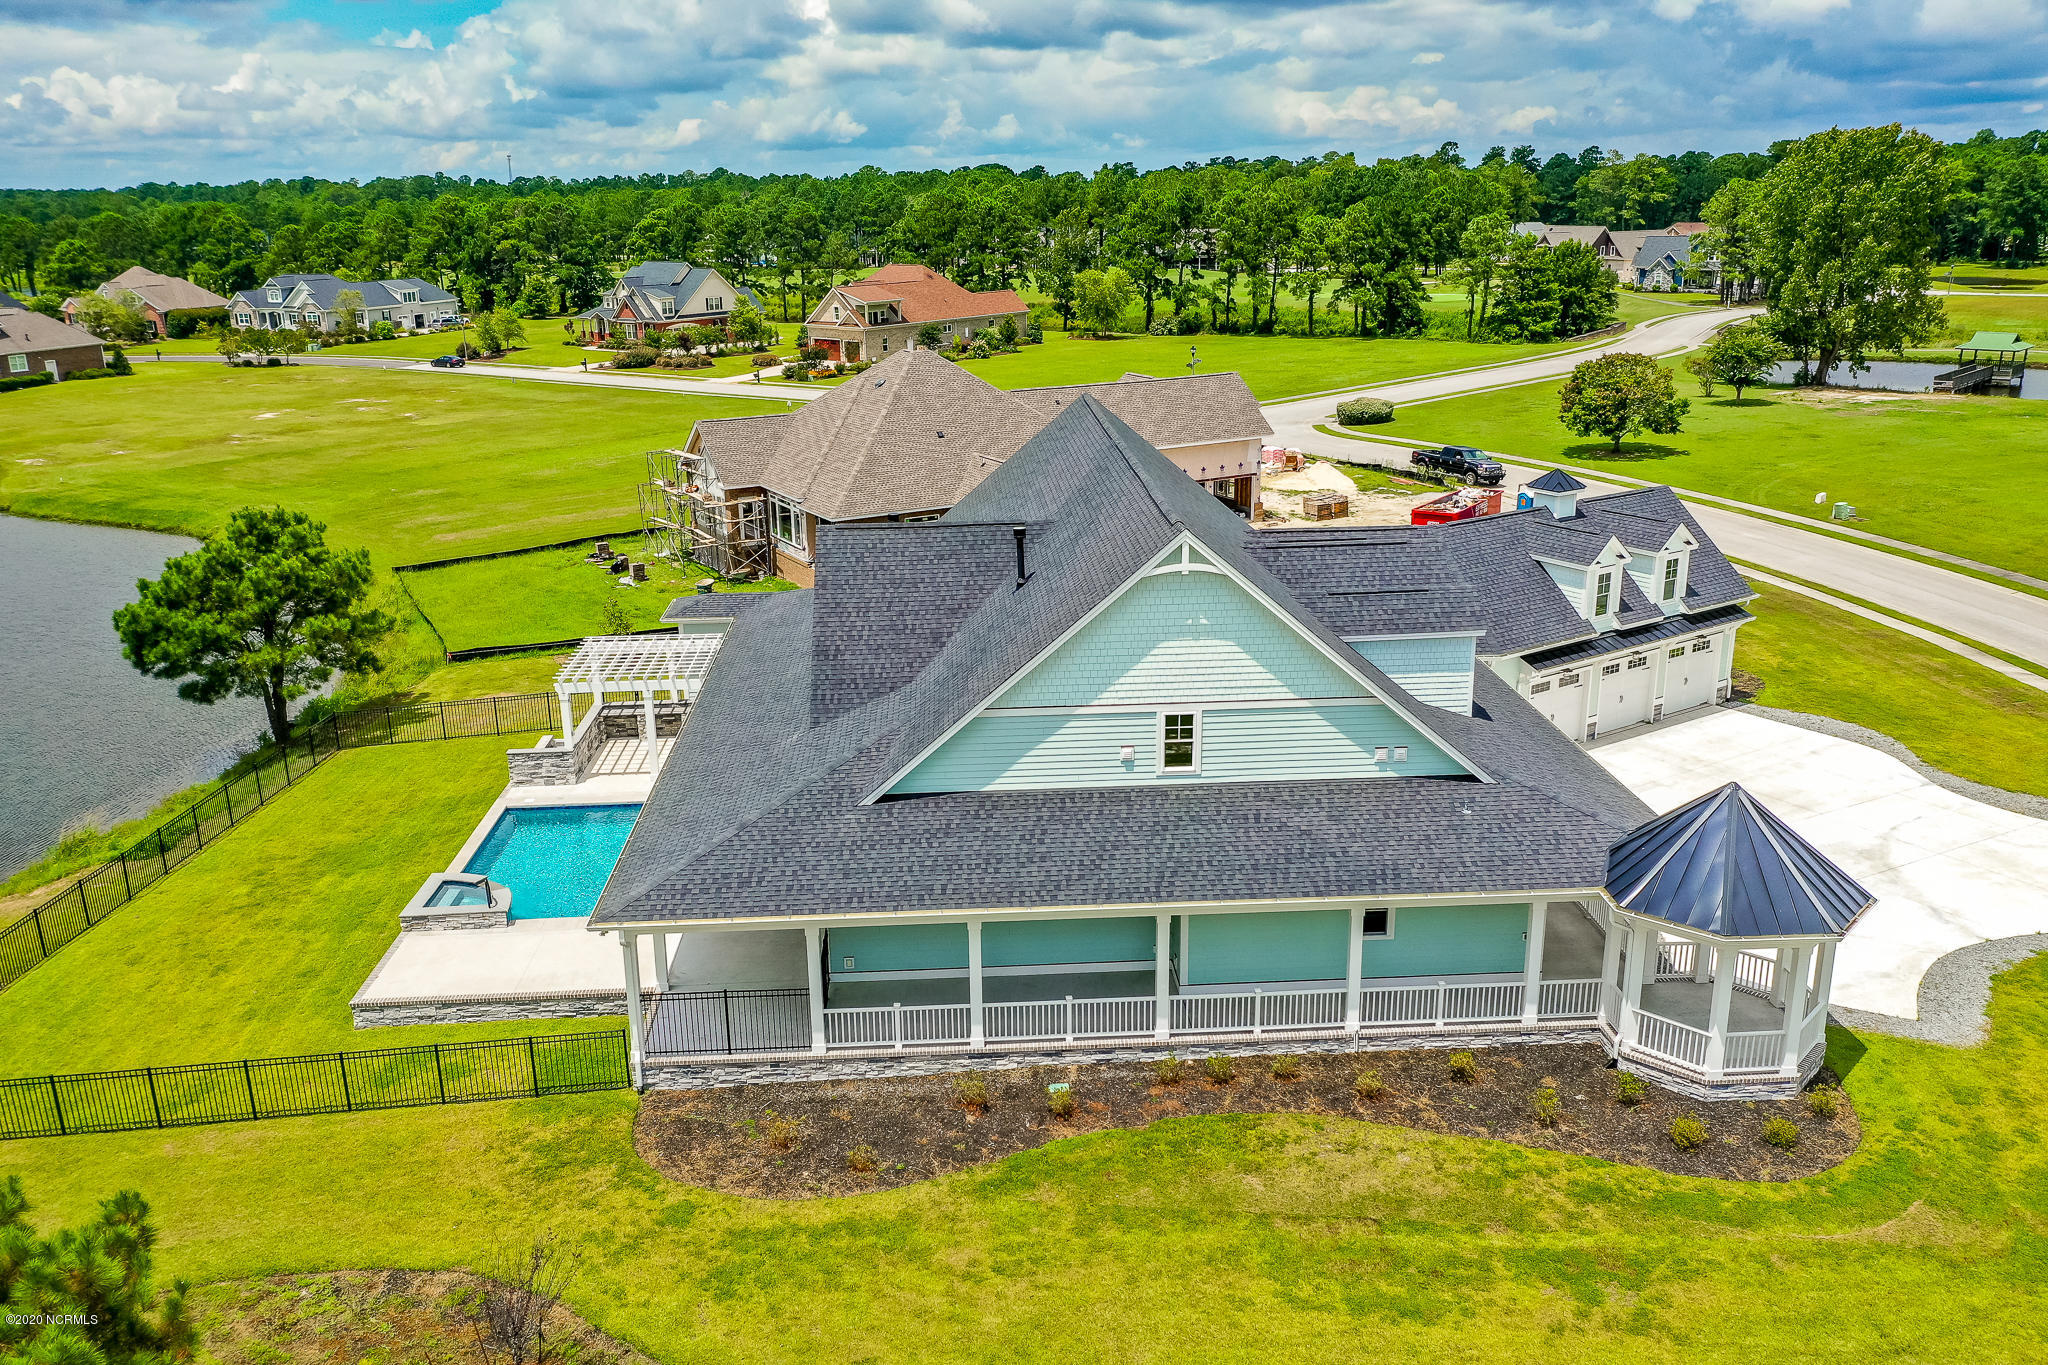 9207 Oldfield Road, Calabash, North Carolina 28467, 3 Bedrooms Bedrooms, 11 Rooms Rooms,2 BathroomsBathrooms,Single family residence,For sale,Oldfield,100231154